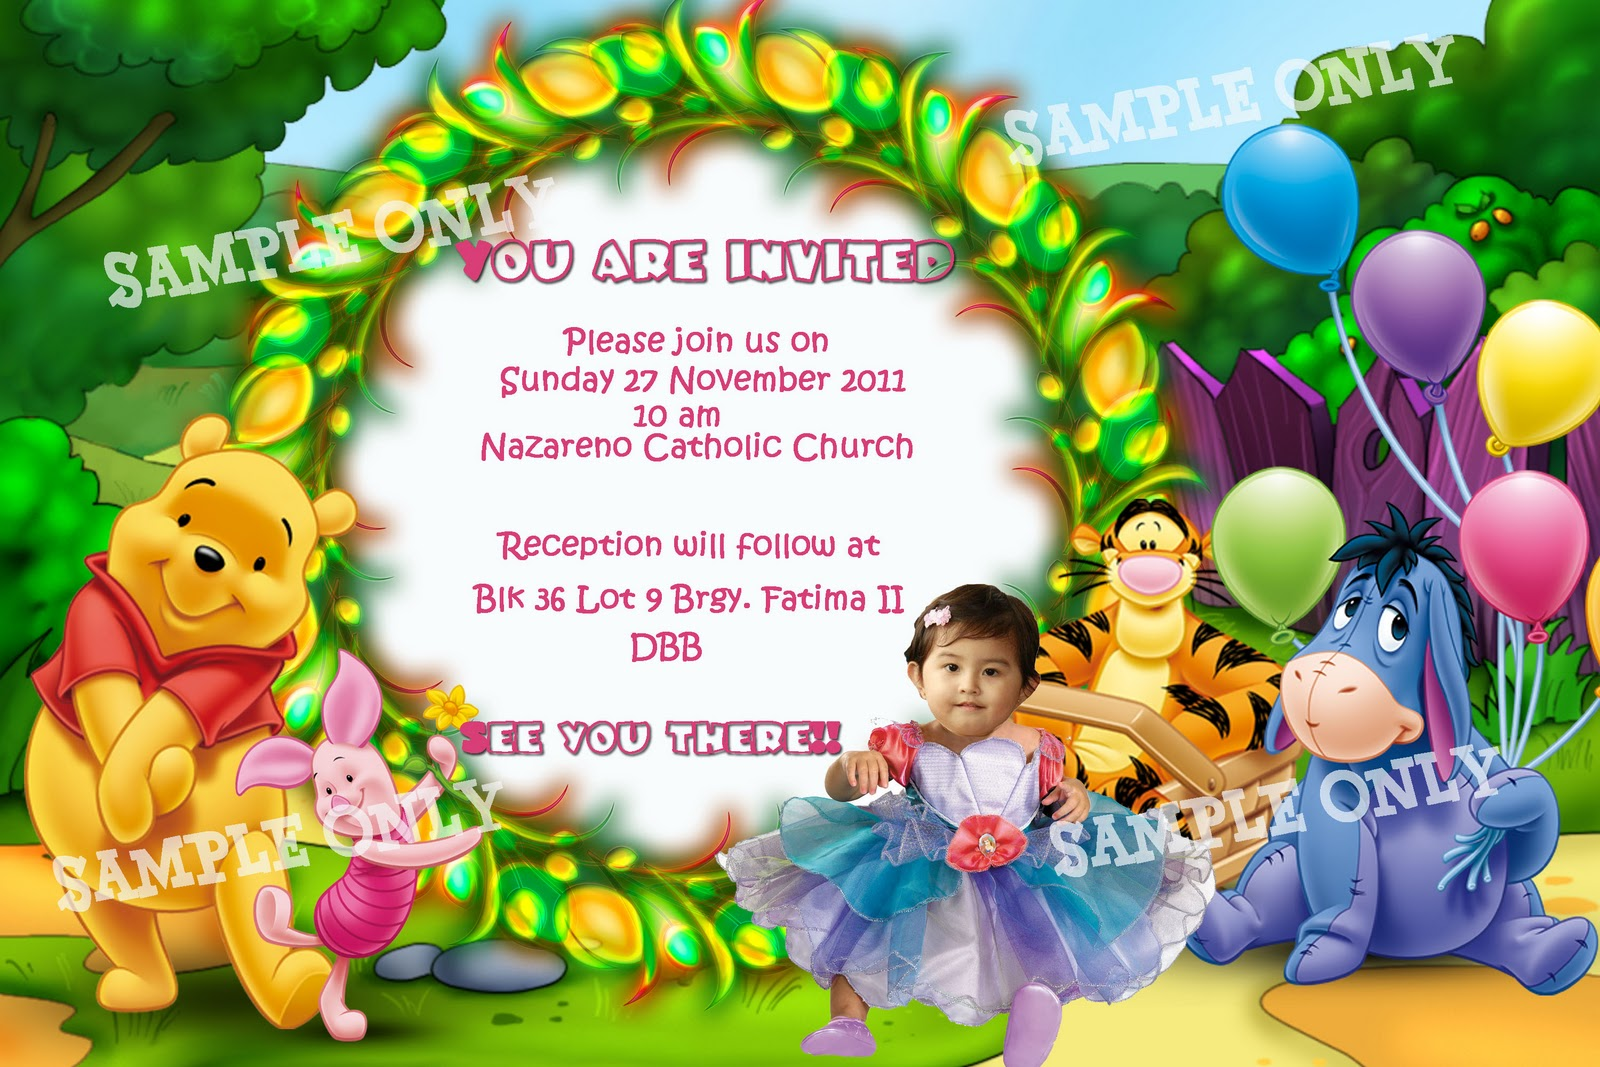 For your creative graphic design and printing needs sample sample baptismal invitation girls altavistaventures Gallery